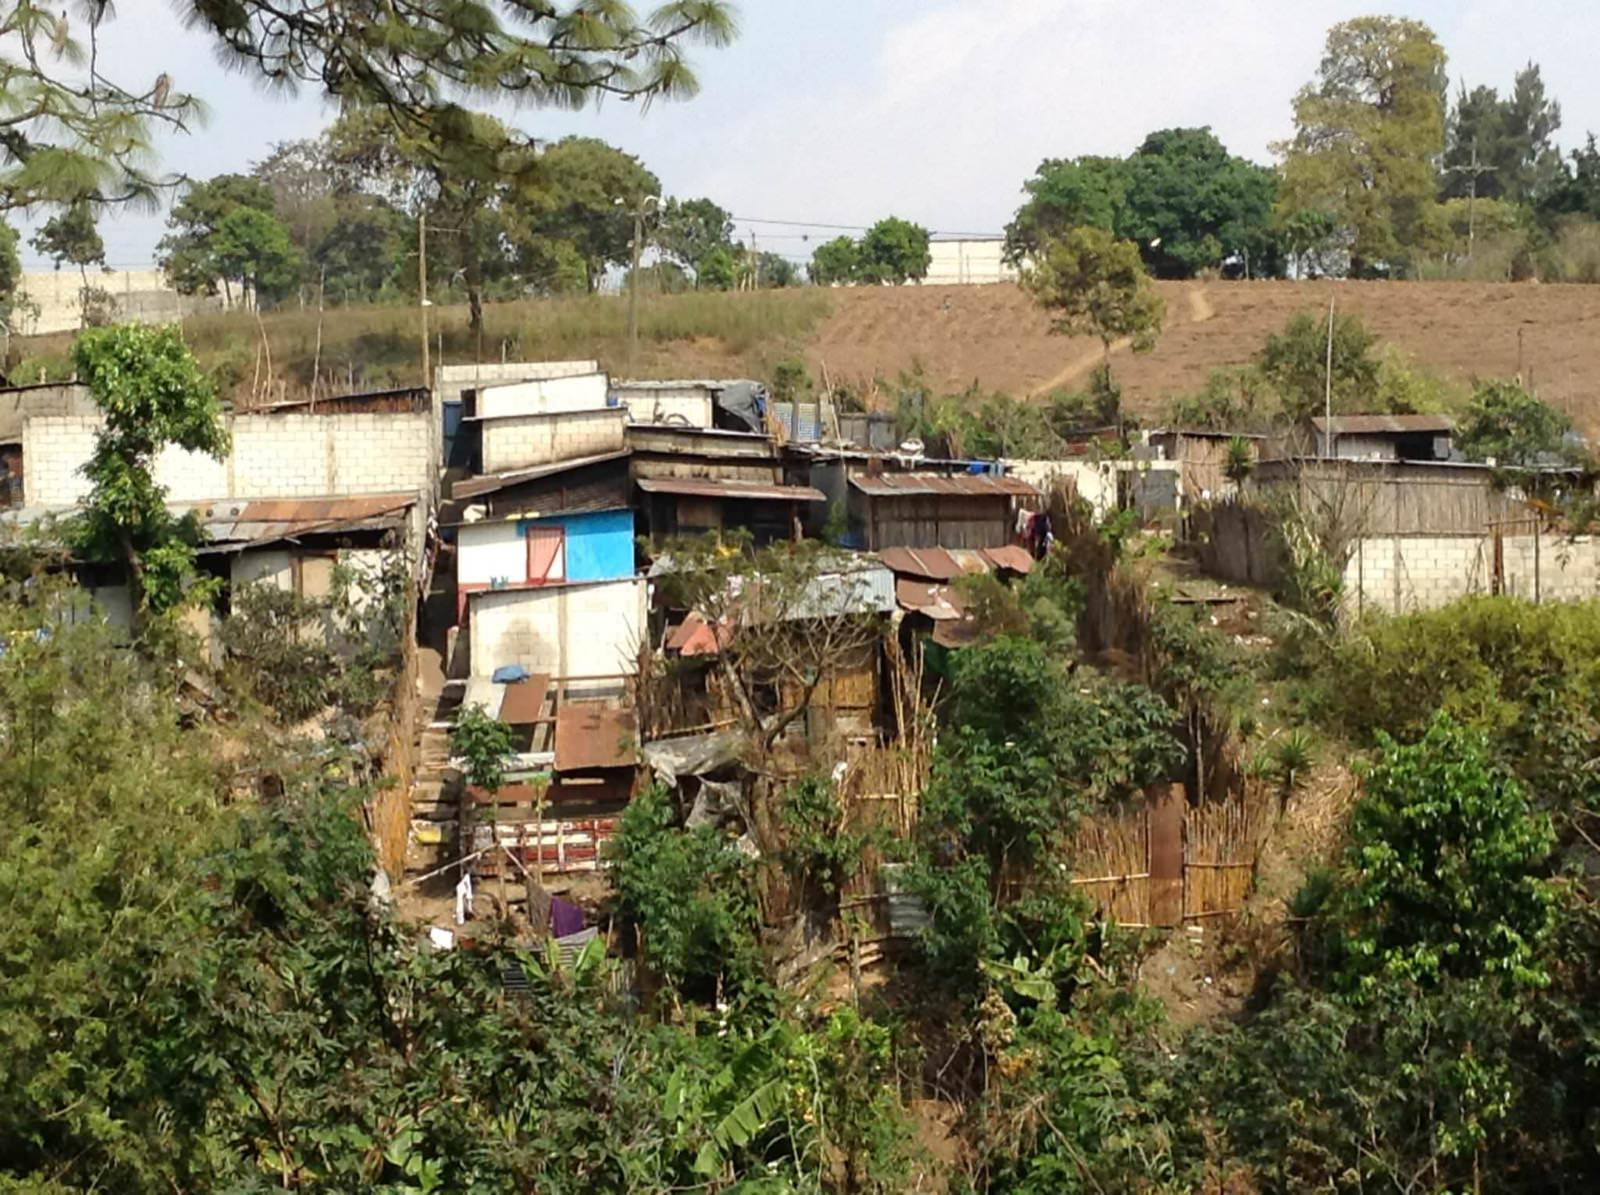 Guatemalan Houses in Parramos